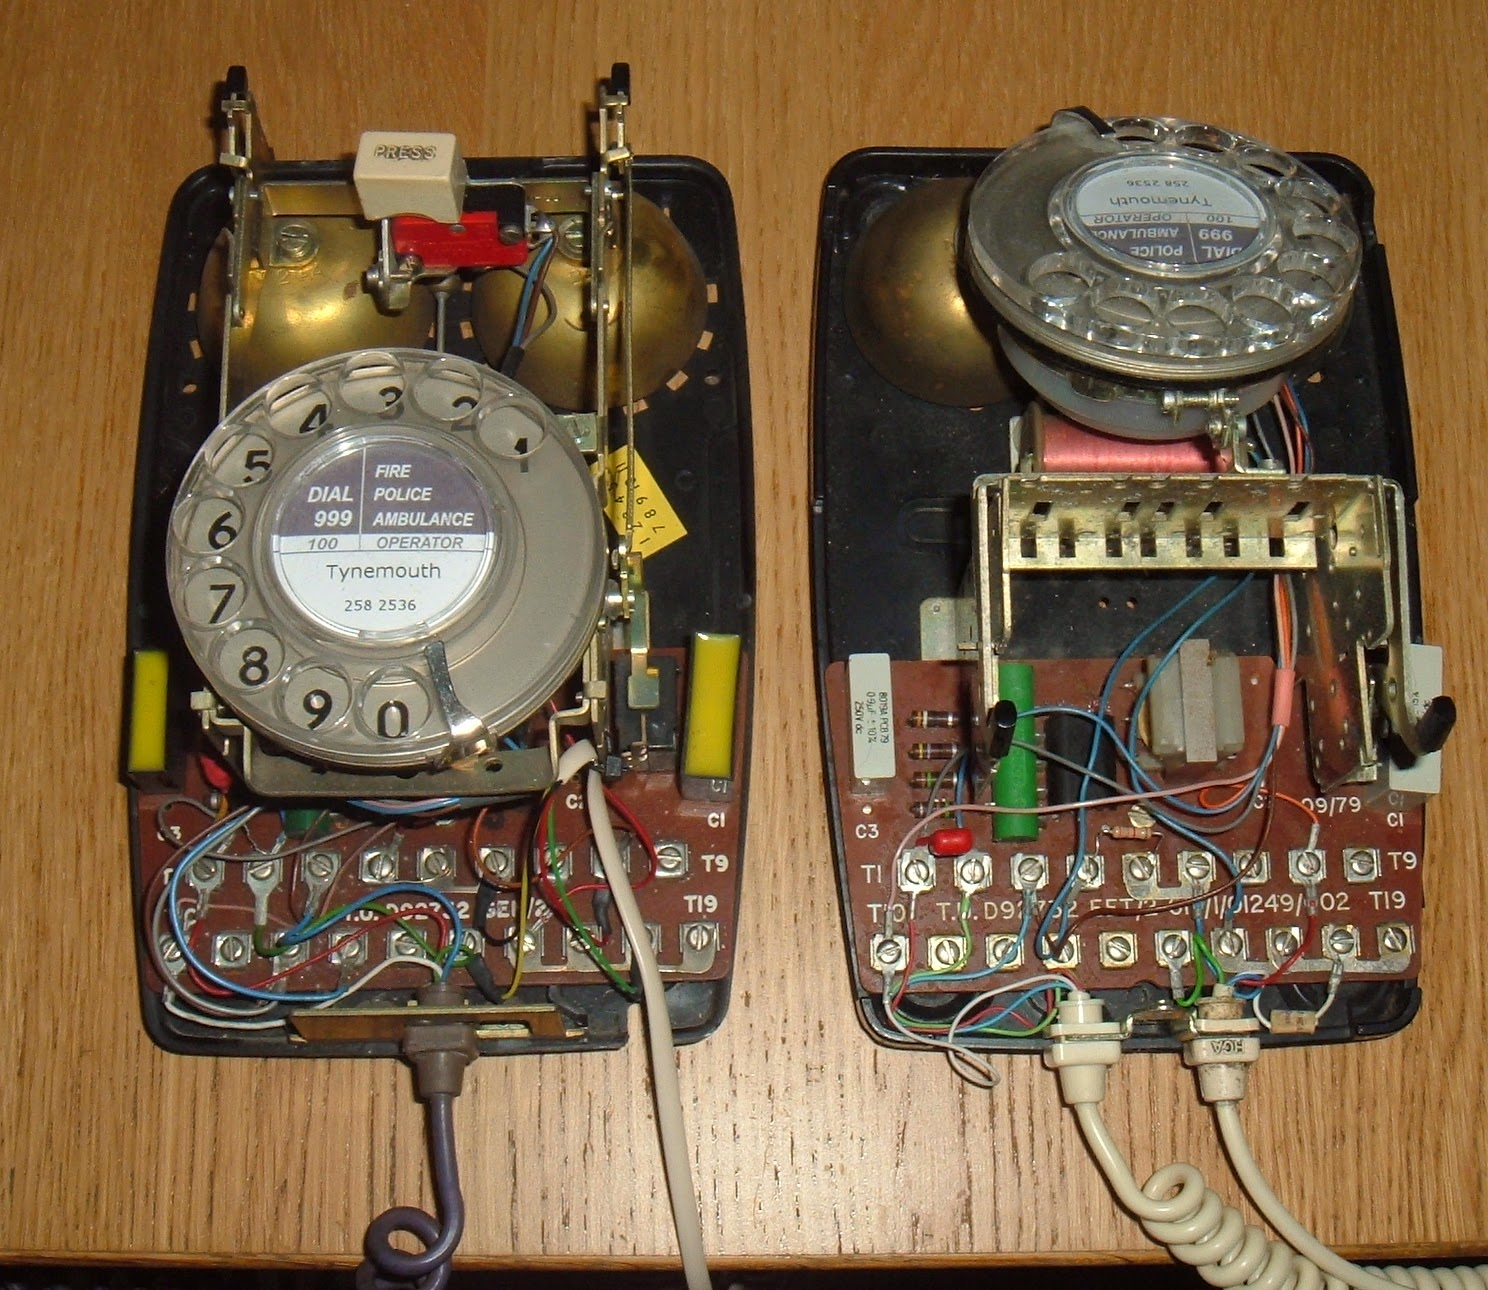 Old Dial Phone Wiring Modern Design Of Diagram Electrical Colours Tynemouth Software Bt 741 Wallphone Conversion In Homes